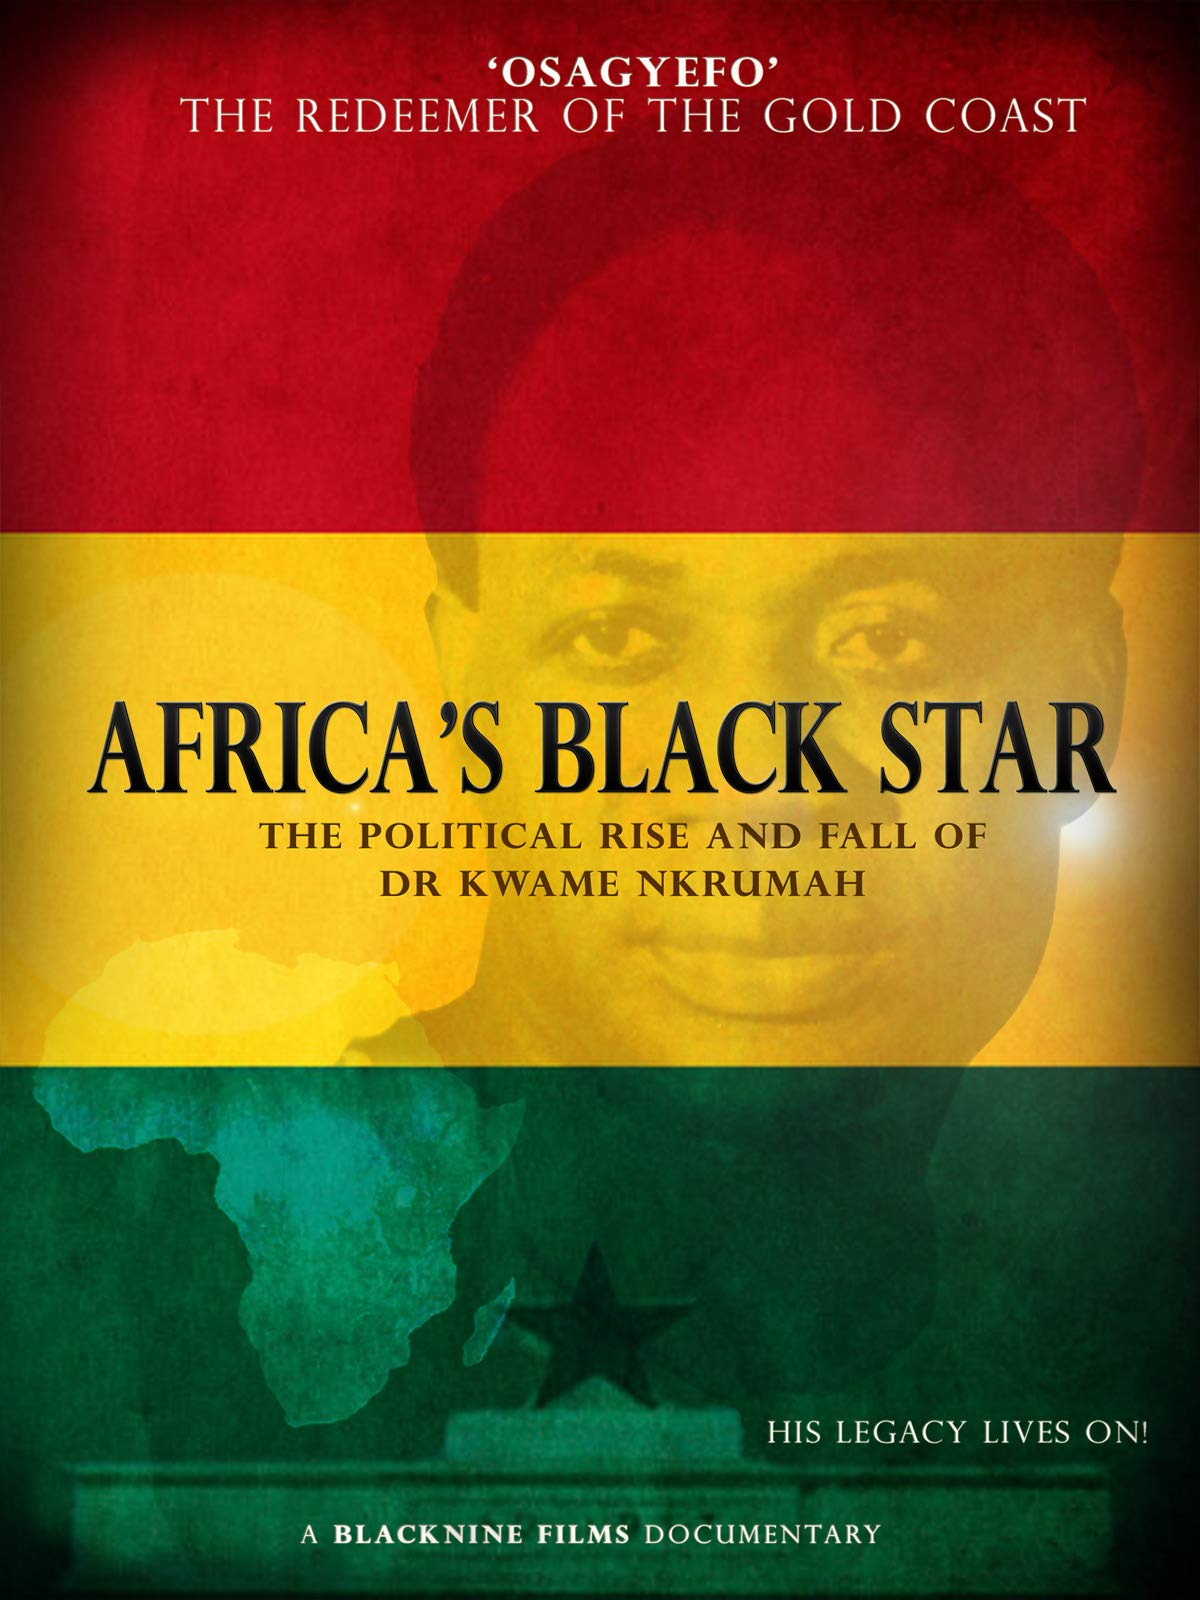 African's Black Star: The Legacy of Kwame Nkrumah